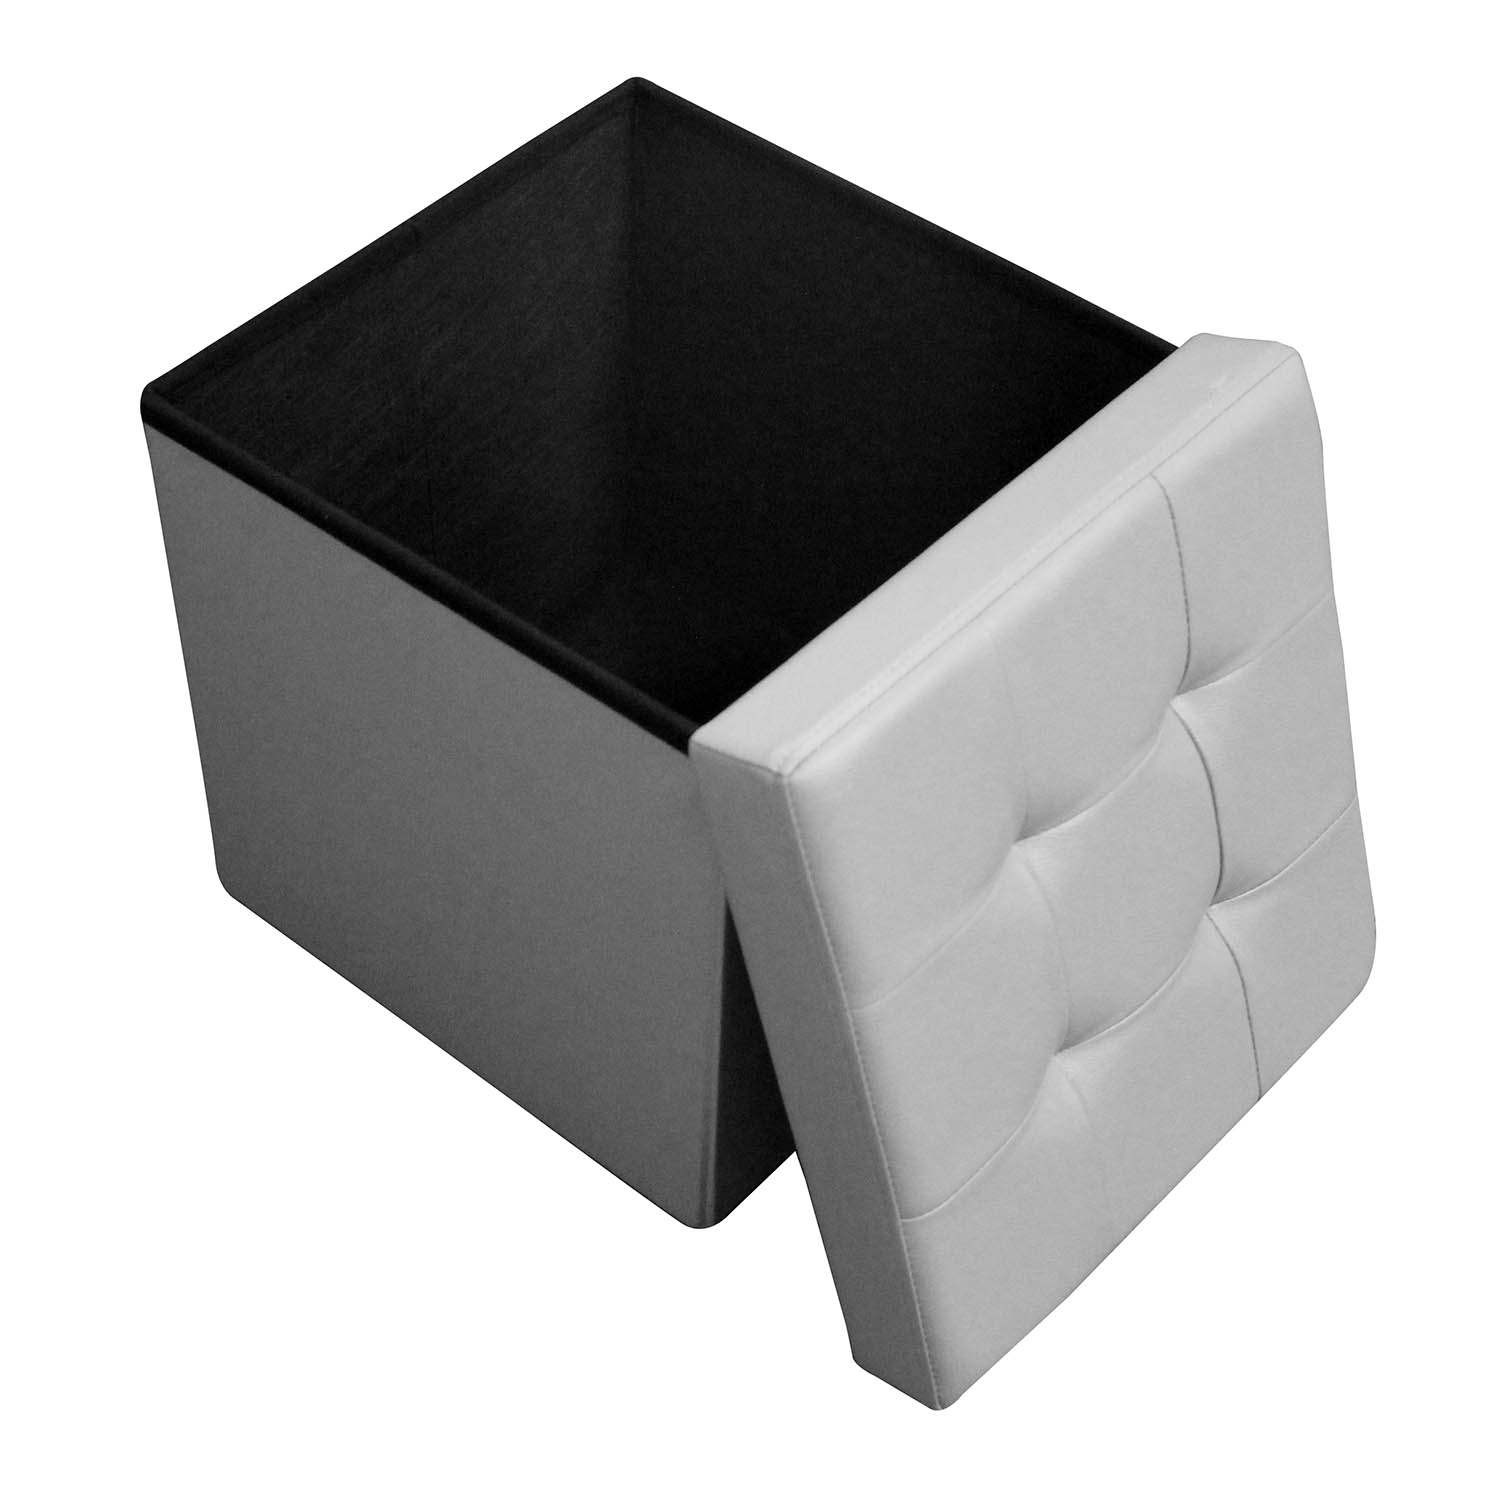 fly pouf poire fly pouf poire with fly pouf poire beautiful pouf poire argent gallery home. Black Bedroom Furniture Sets. Home Design Ideas